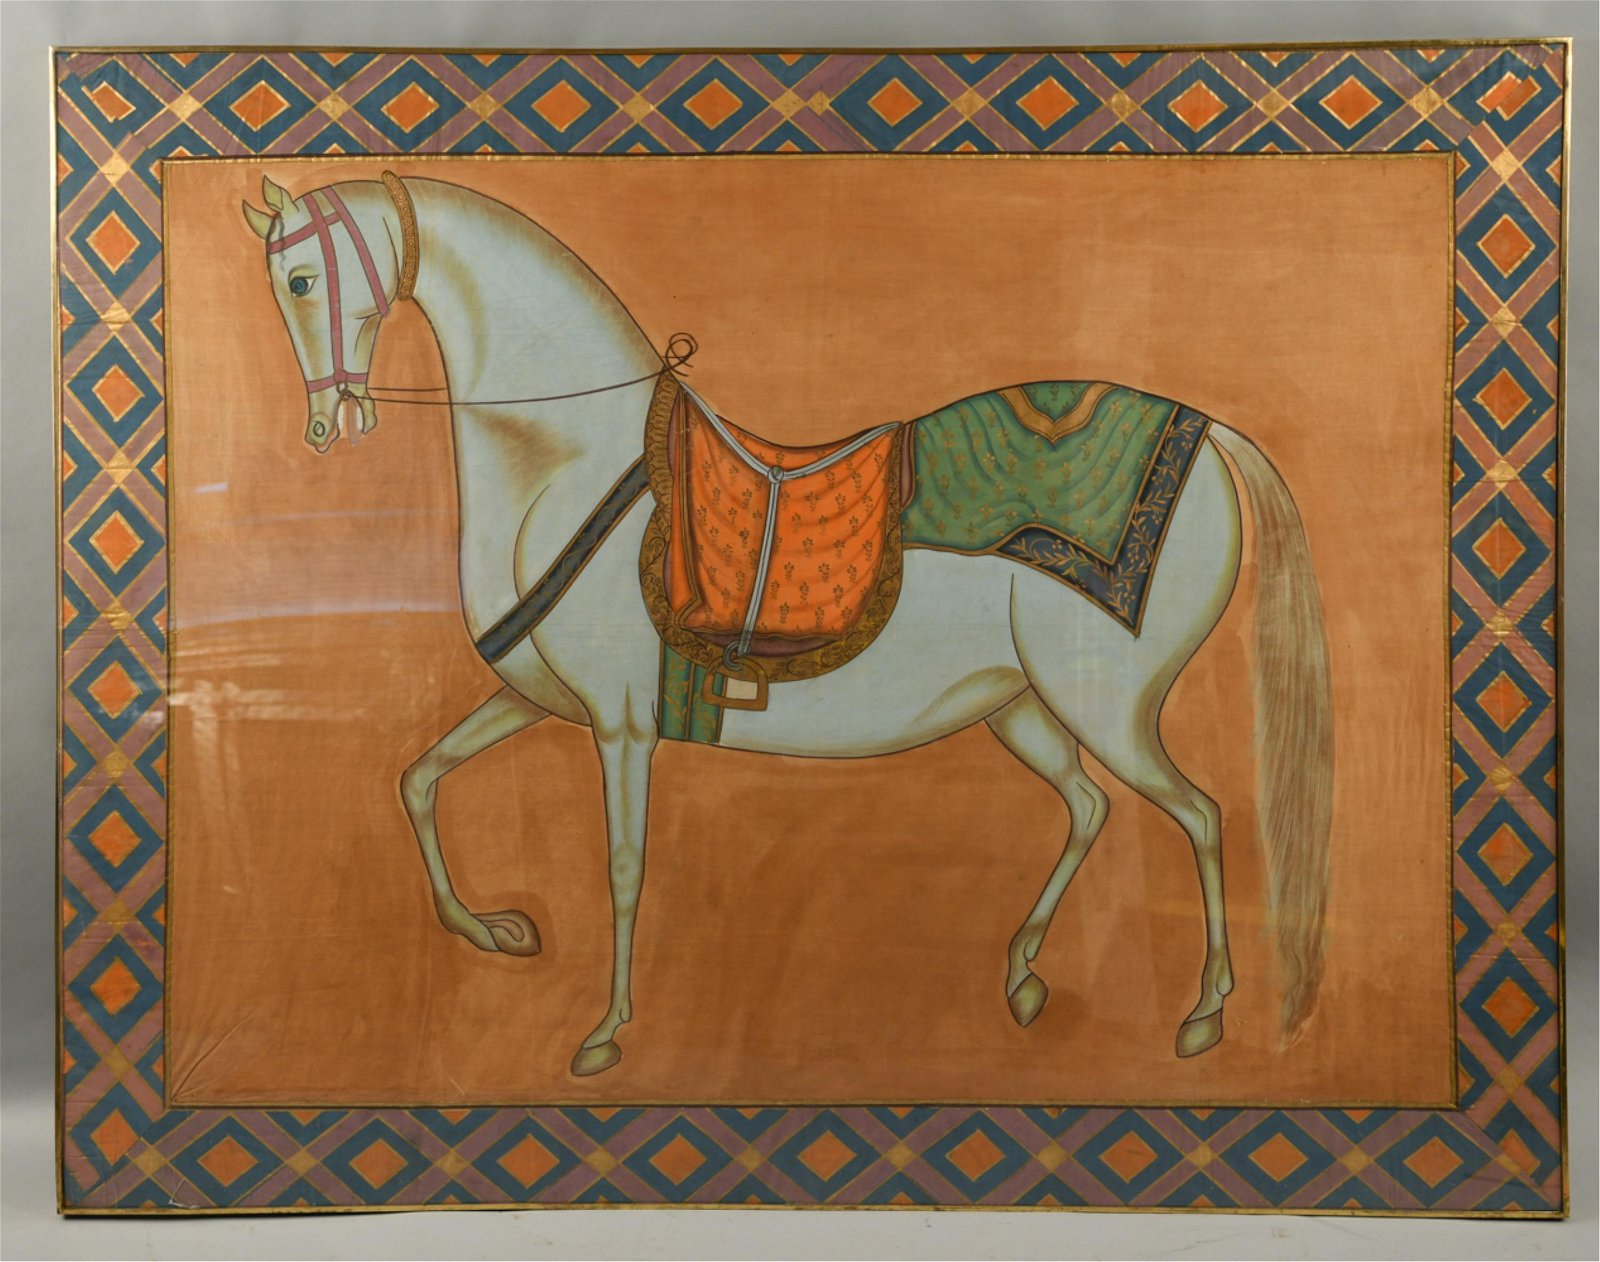 LARGE HORSE PAINTING ON FABRIC